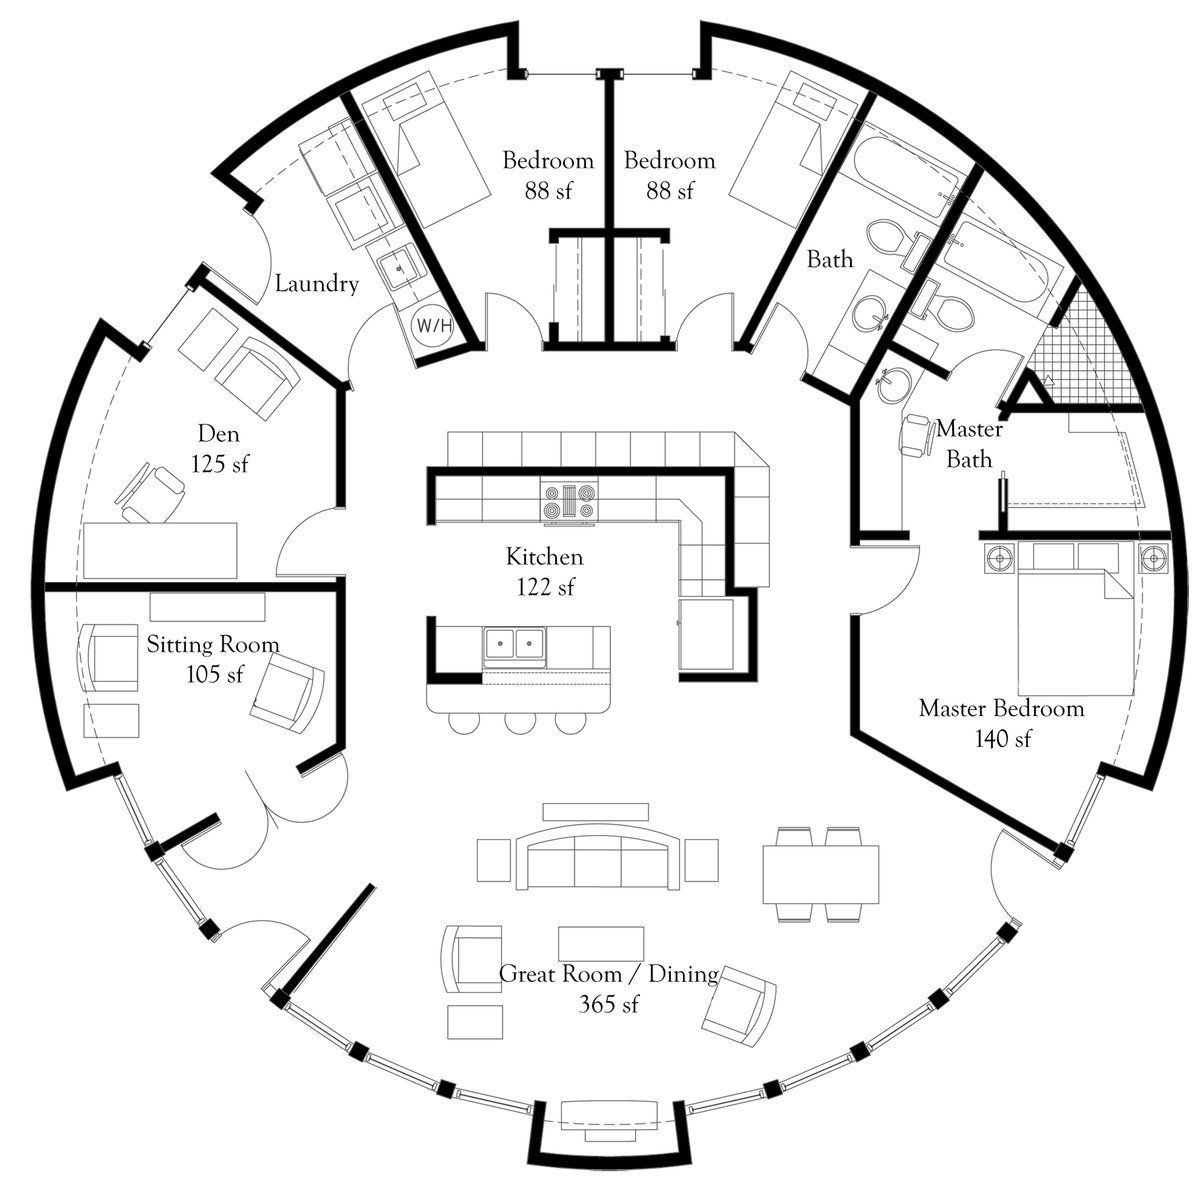 Callisto Vi Monolithic Dome Institute Round House Plans Dome Home Monolithic Dome Homes